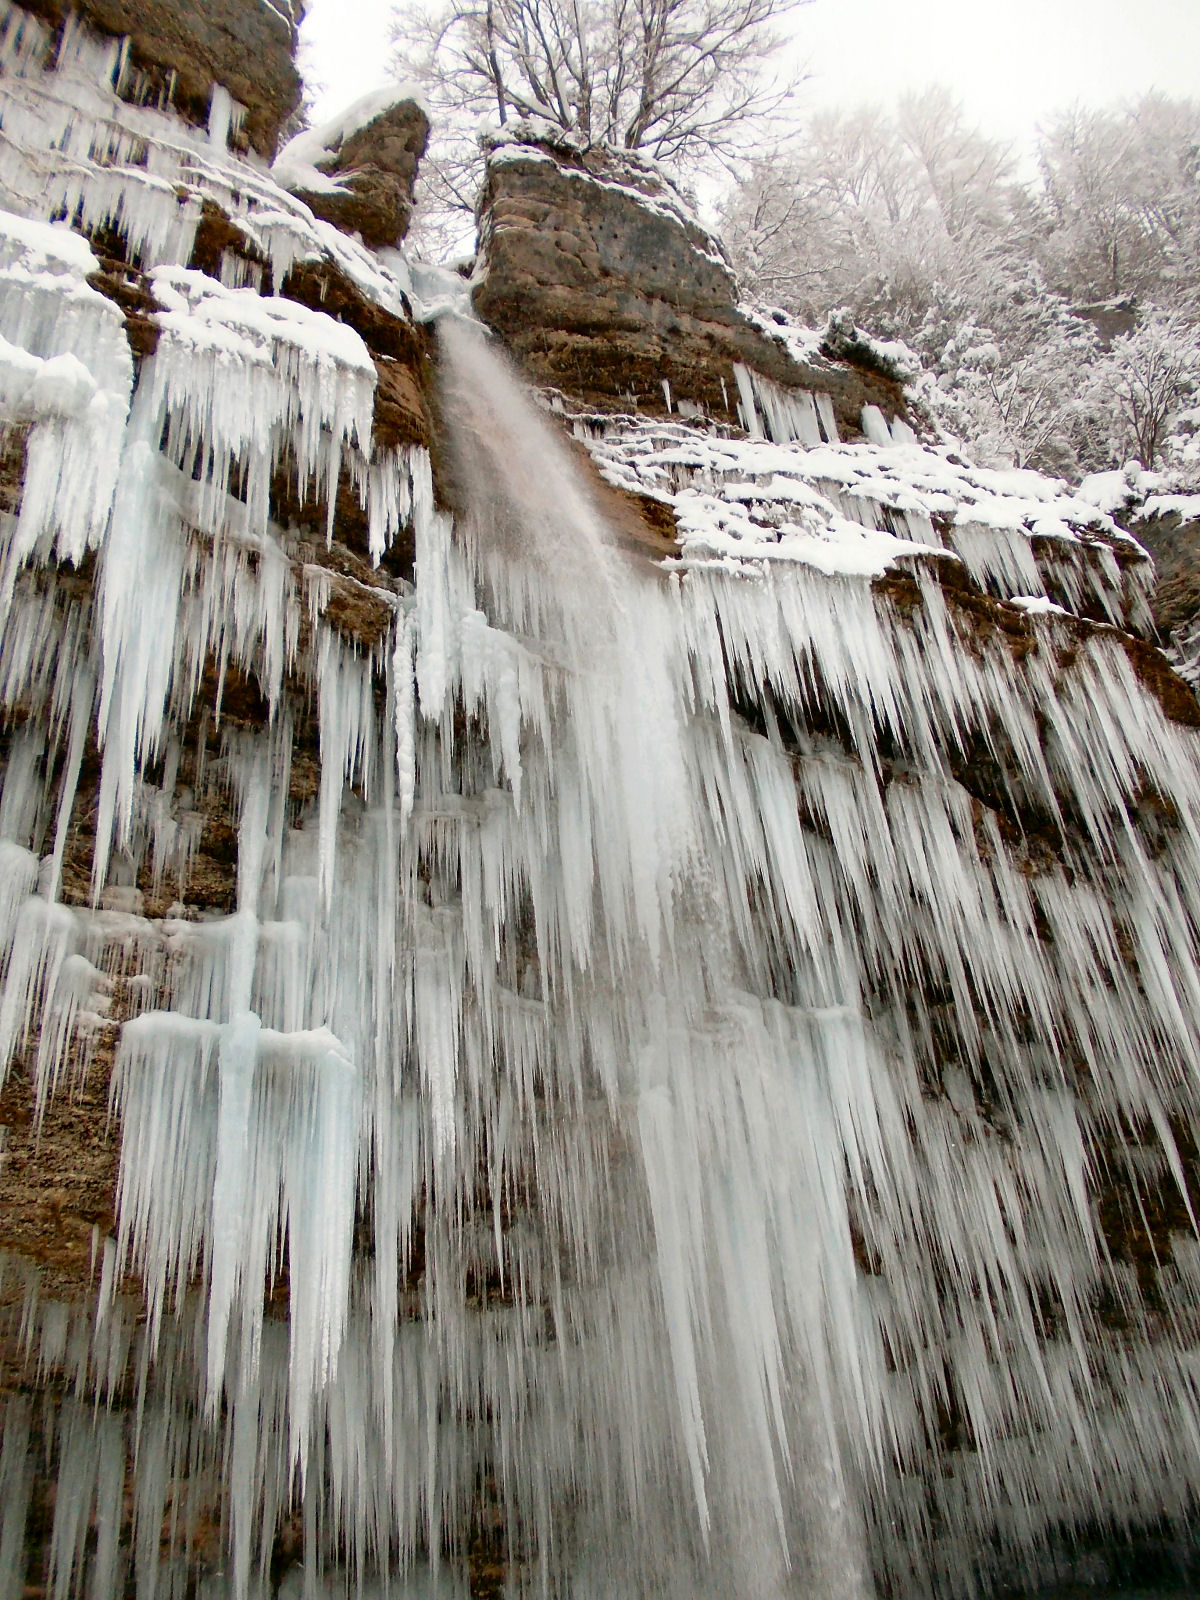 View of the frozen Pericnik waterfall in winter